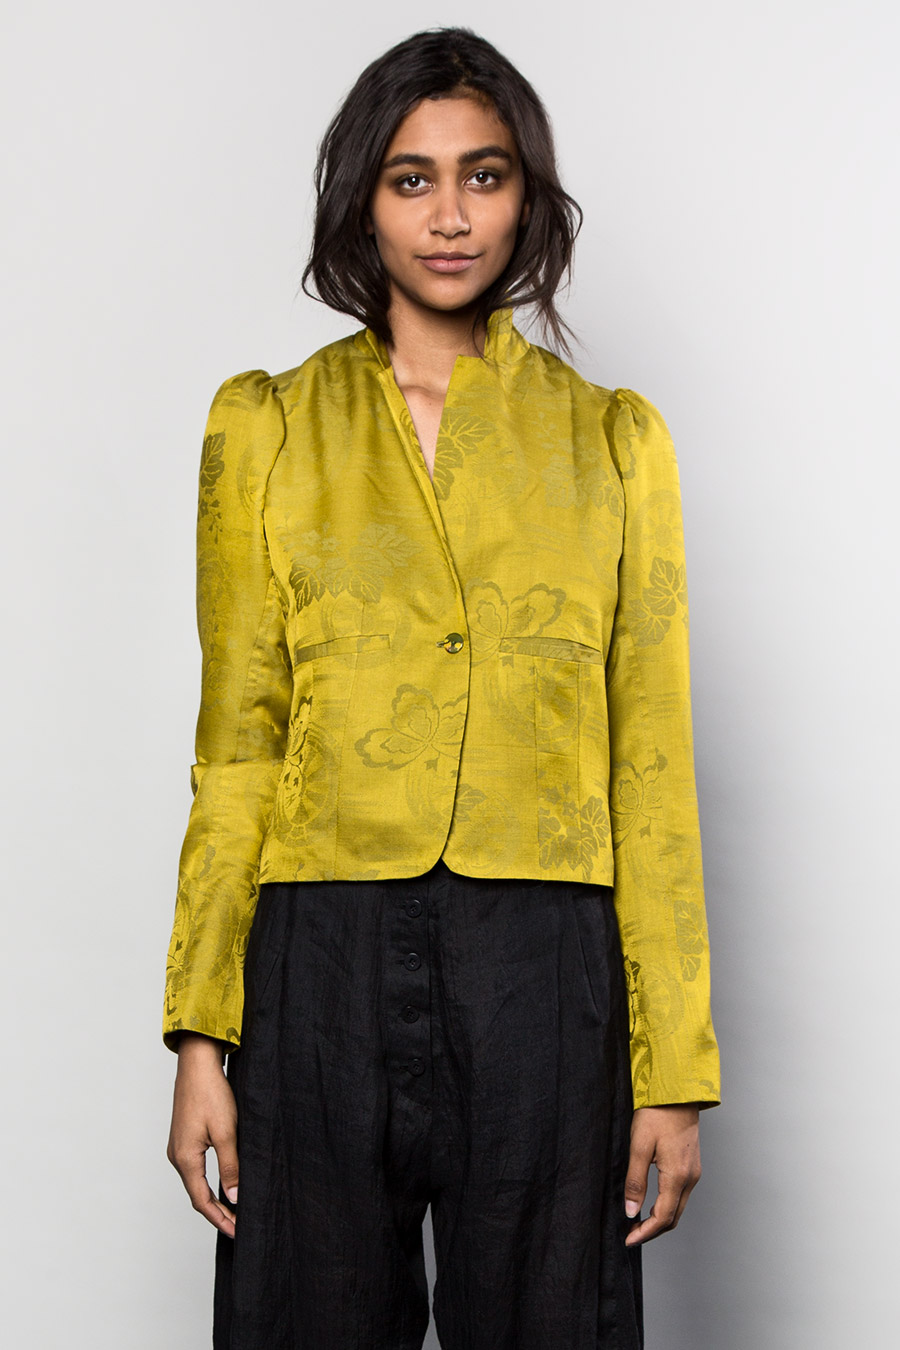 Above: Example of a garment made from full kimono – Olivier Jacket in Yellow-Green Silk